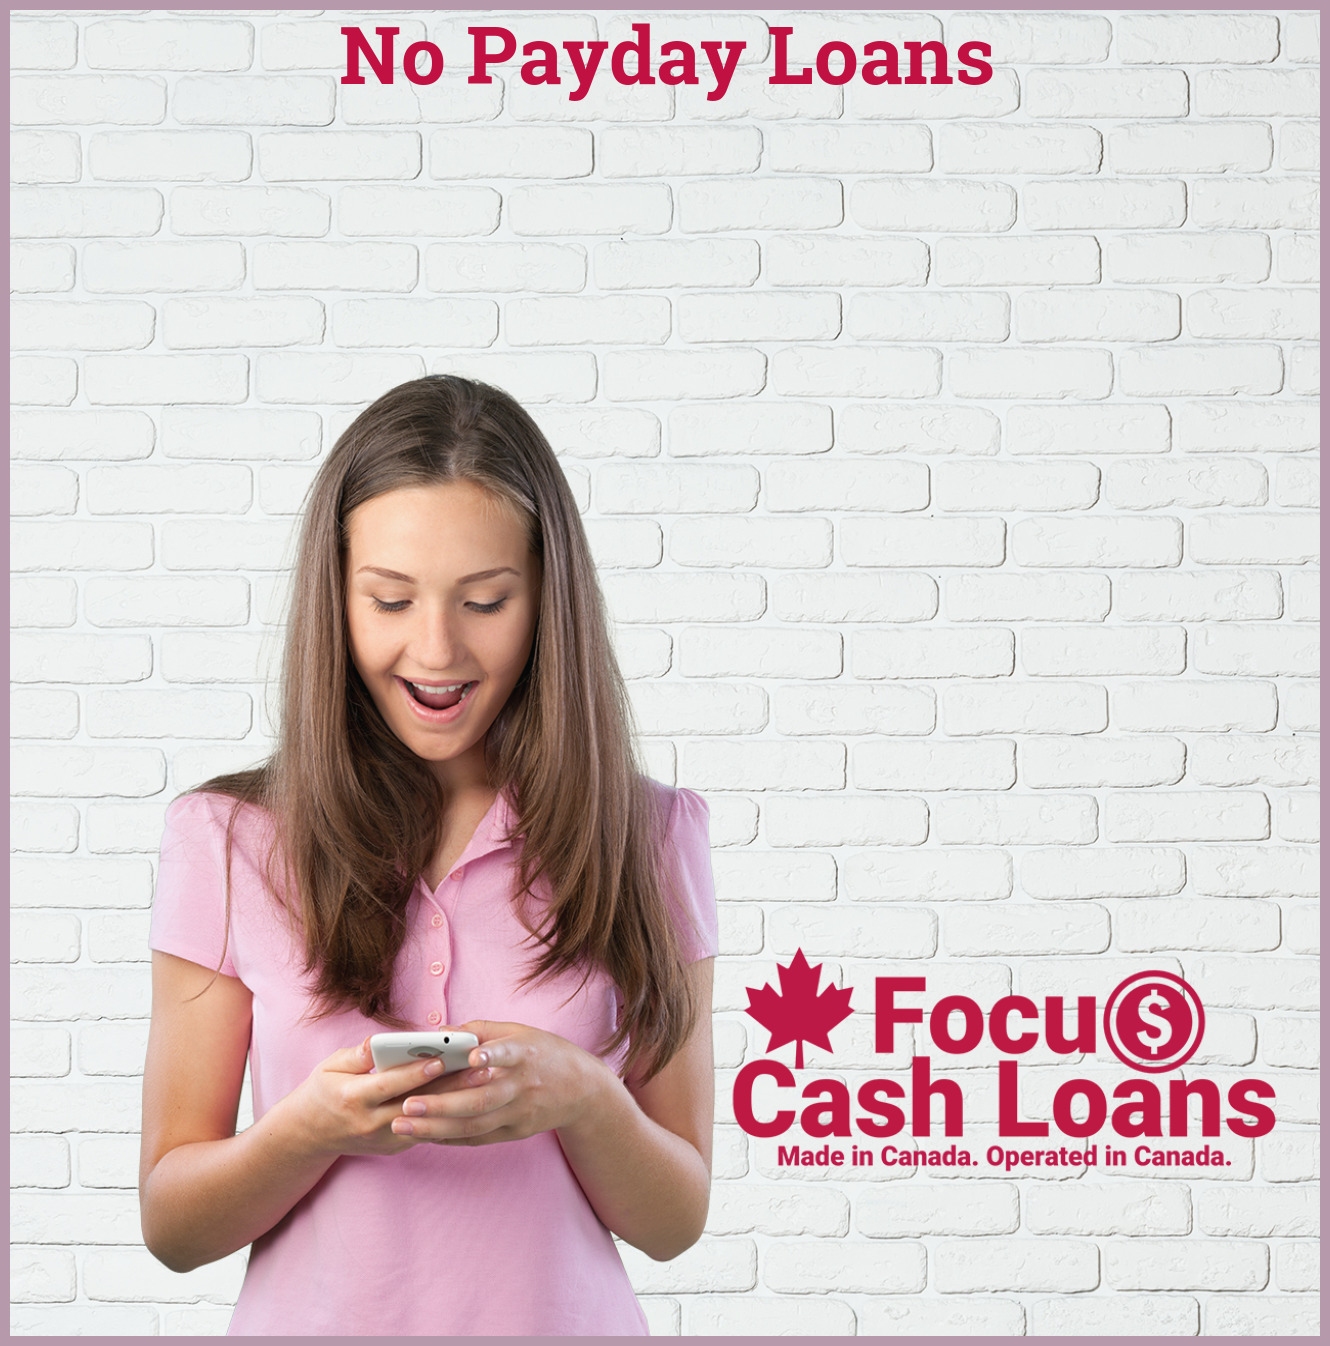 Picture of family that got Same Day Payday Loans